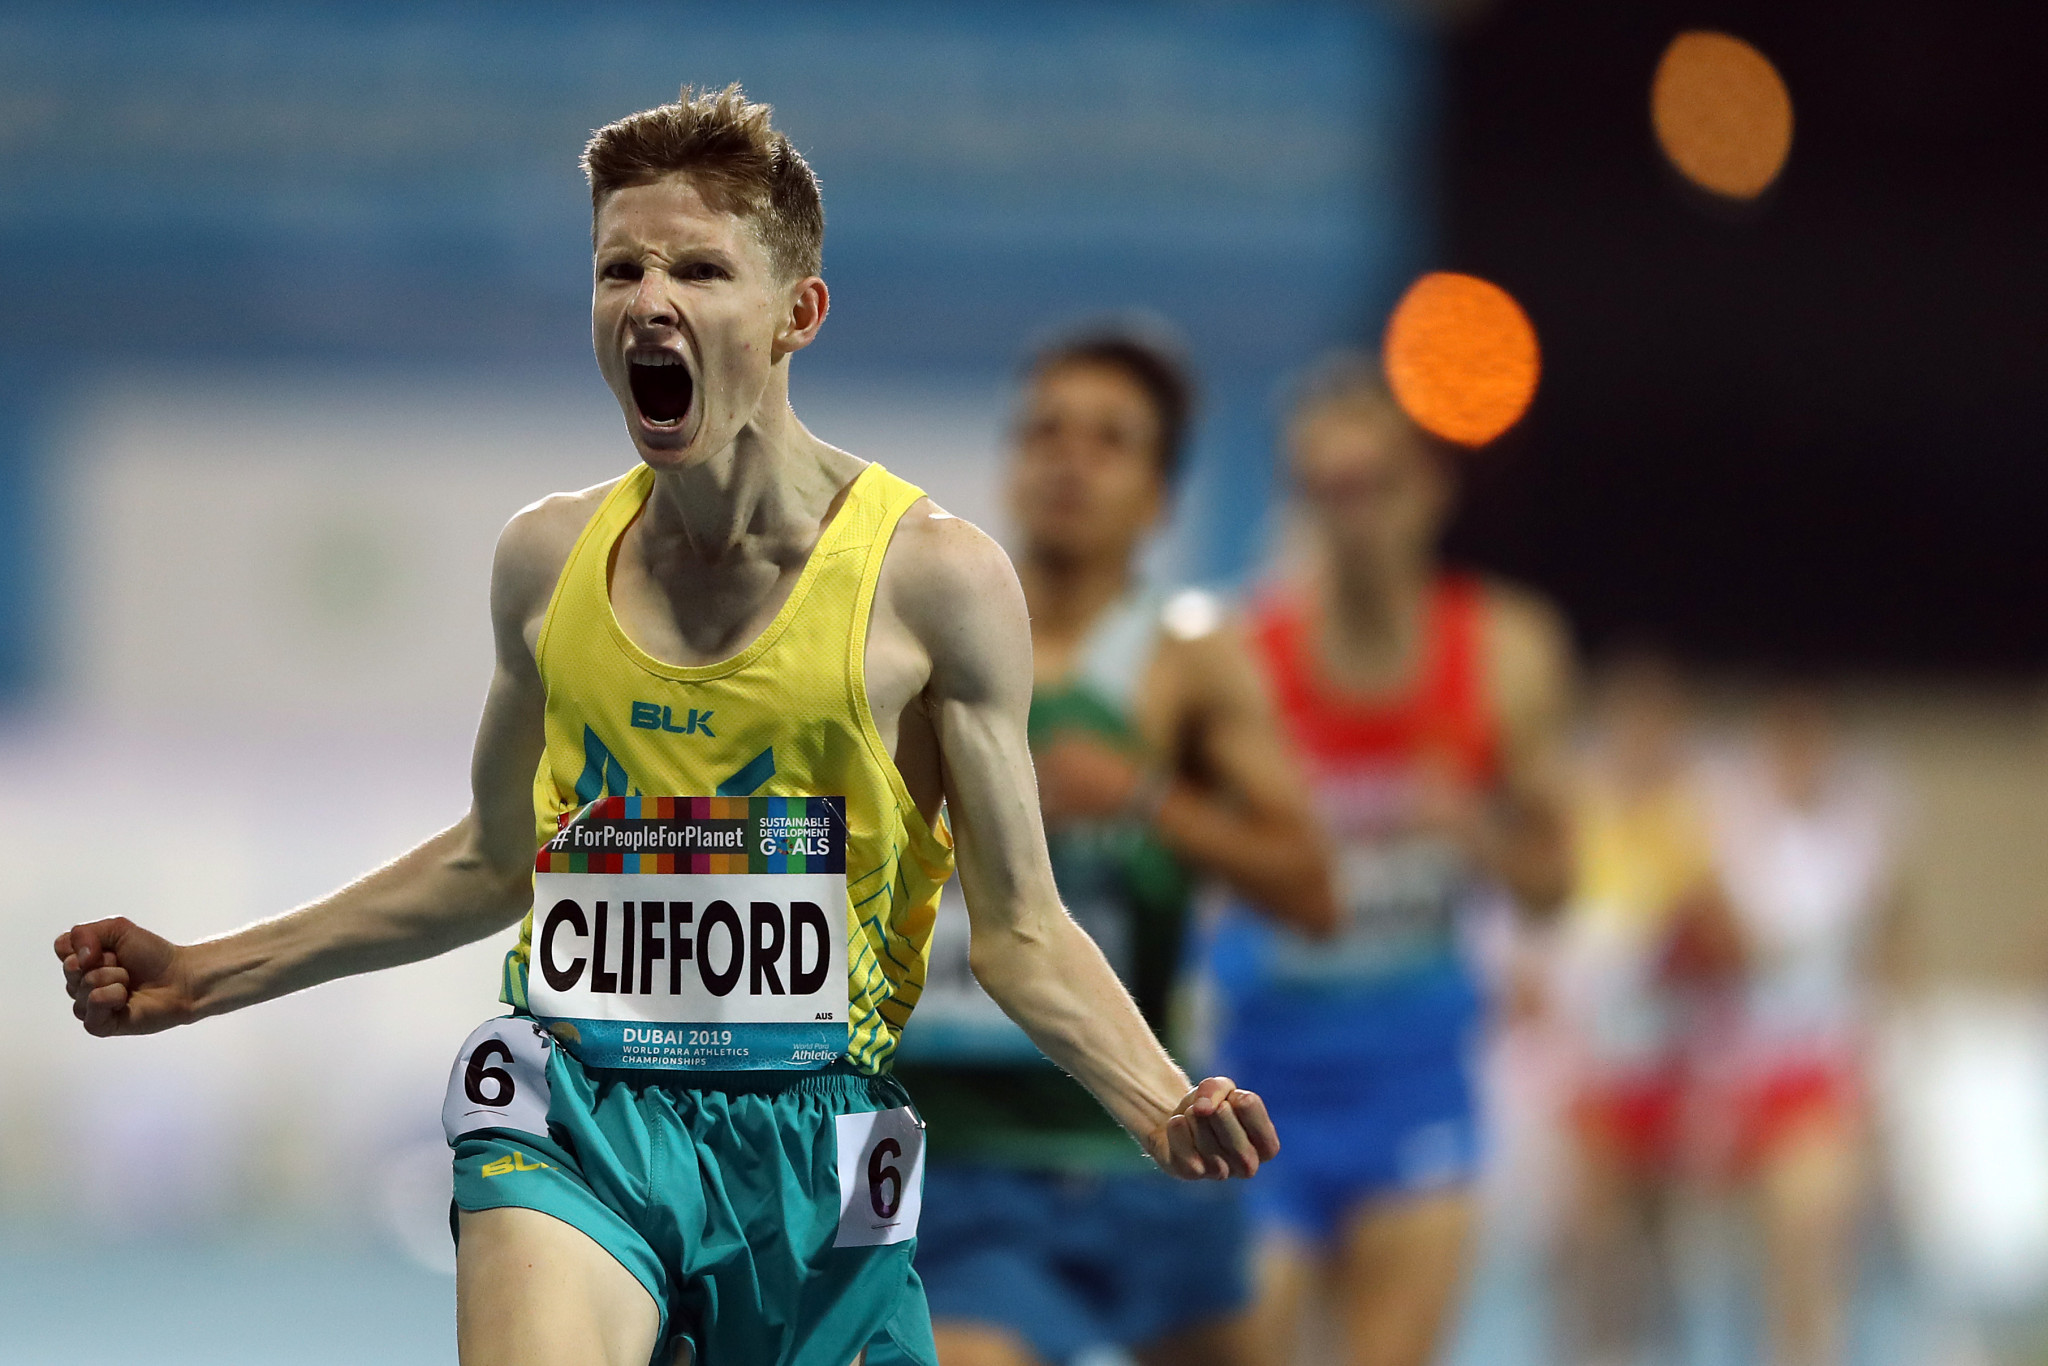 Jaryd Clifford won the men's 1500 metre T13 at the World Para Athletics Championships ©Getty Images